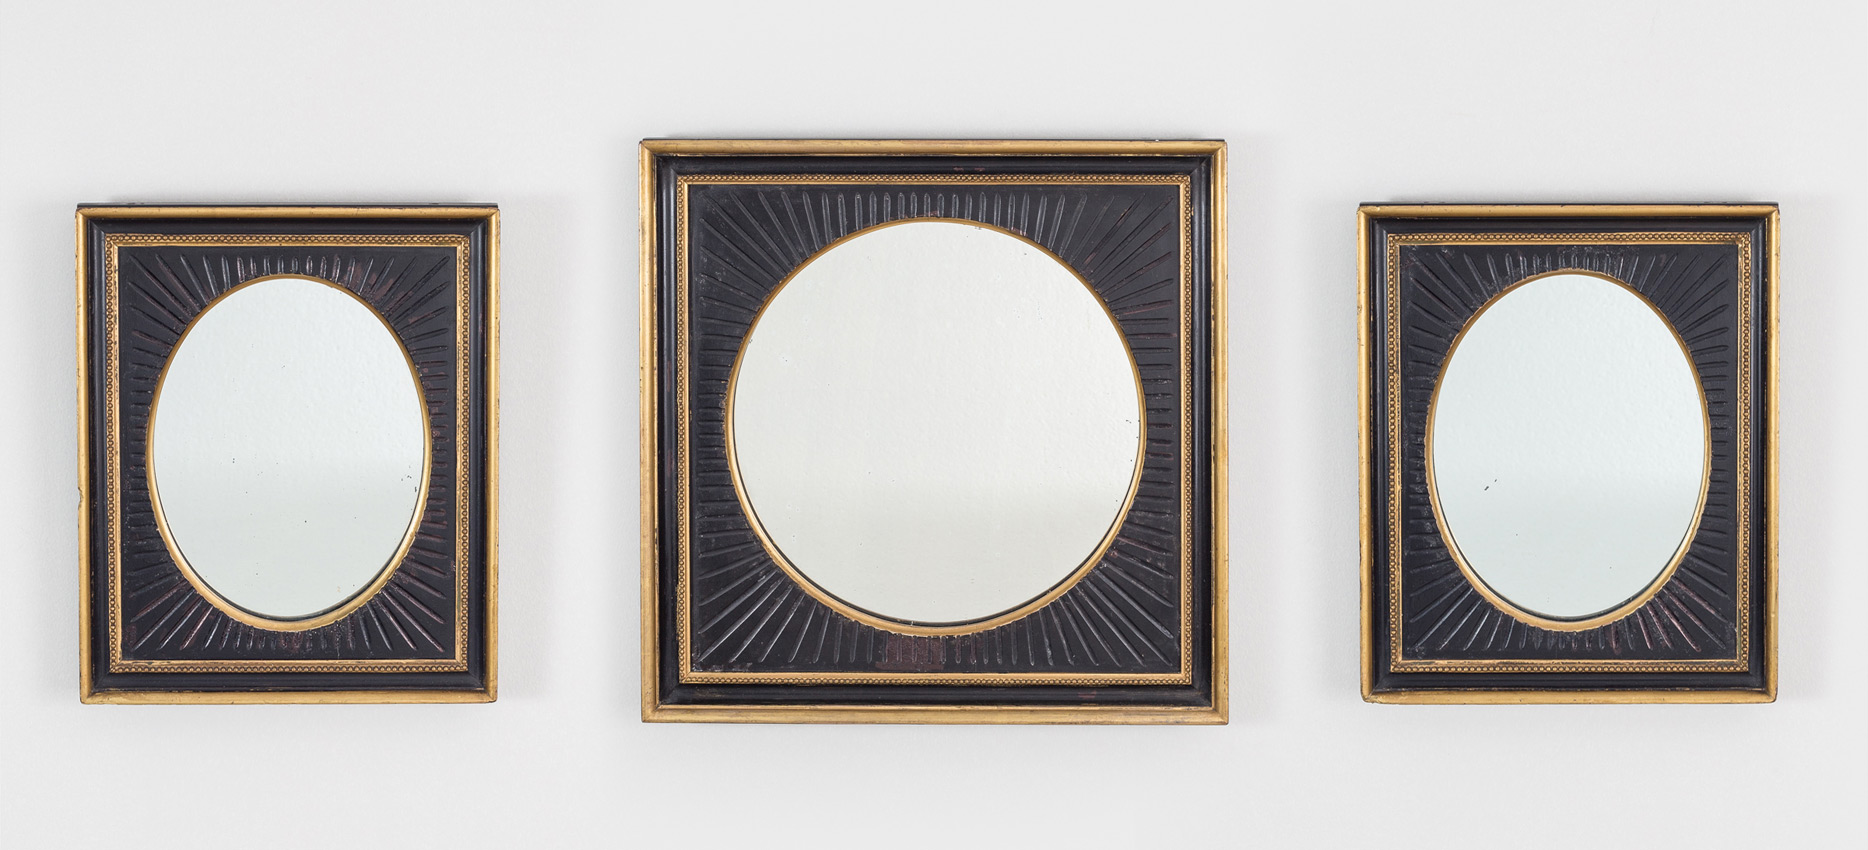 Set of Three Antique Ebonized and Gilded Mirrors